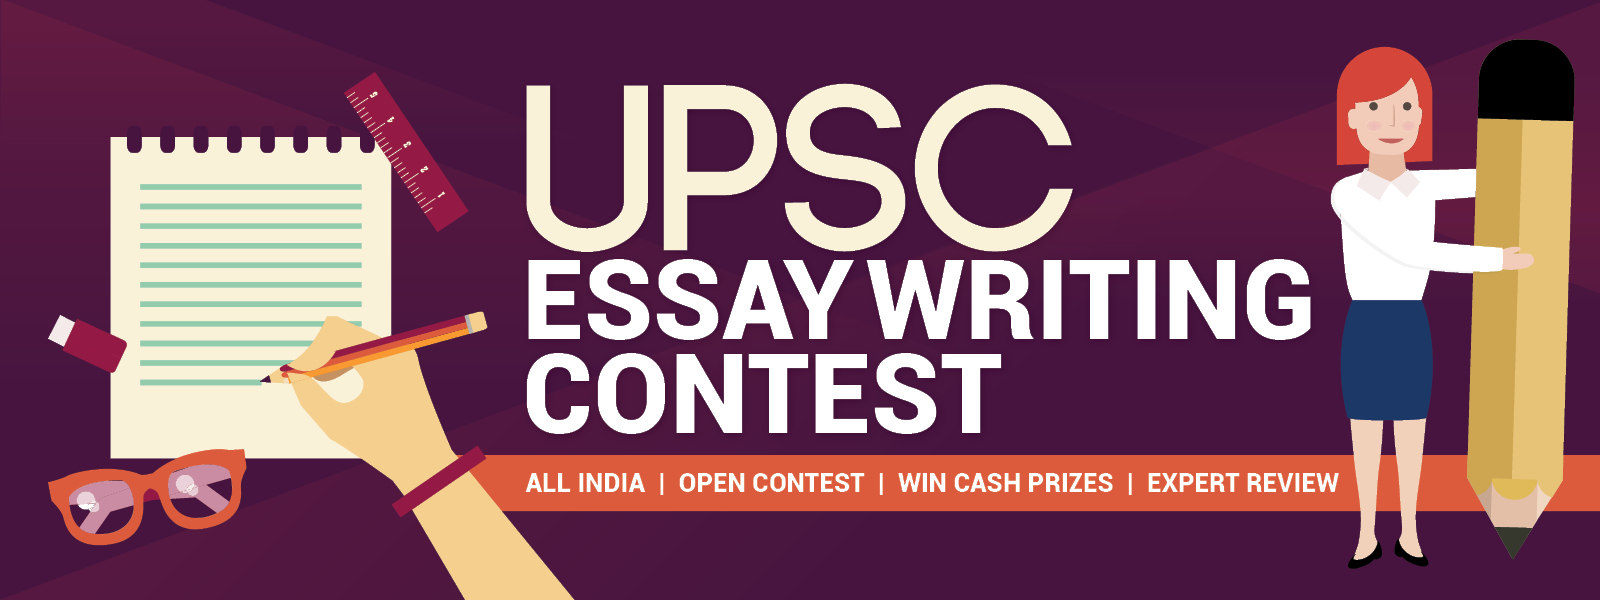 015 Essay Example Writing Contest Incredible International Competitions For High School Students Rules By Essayhub Full